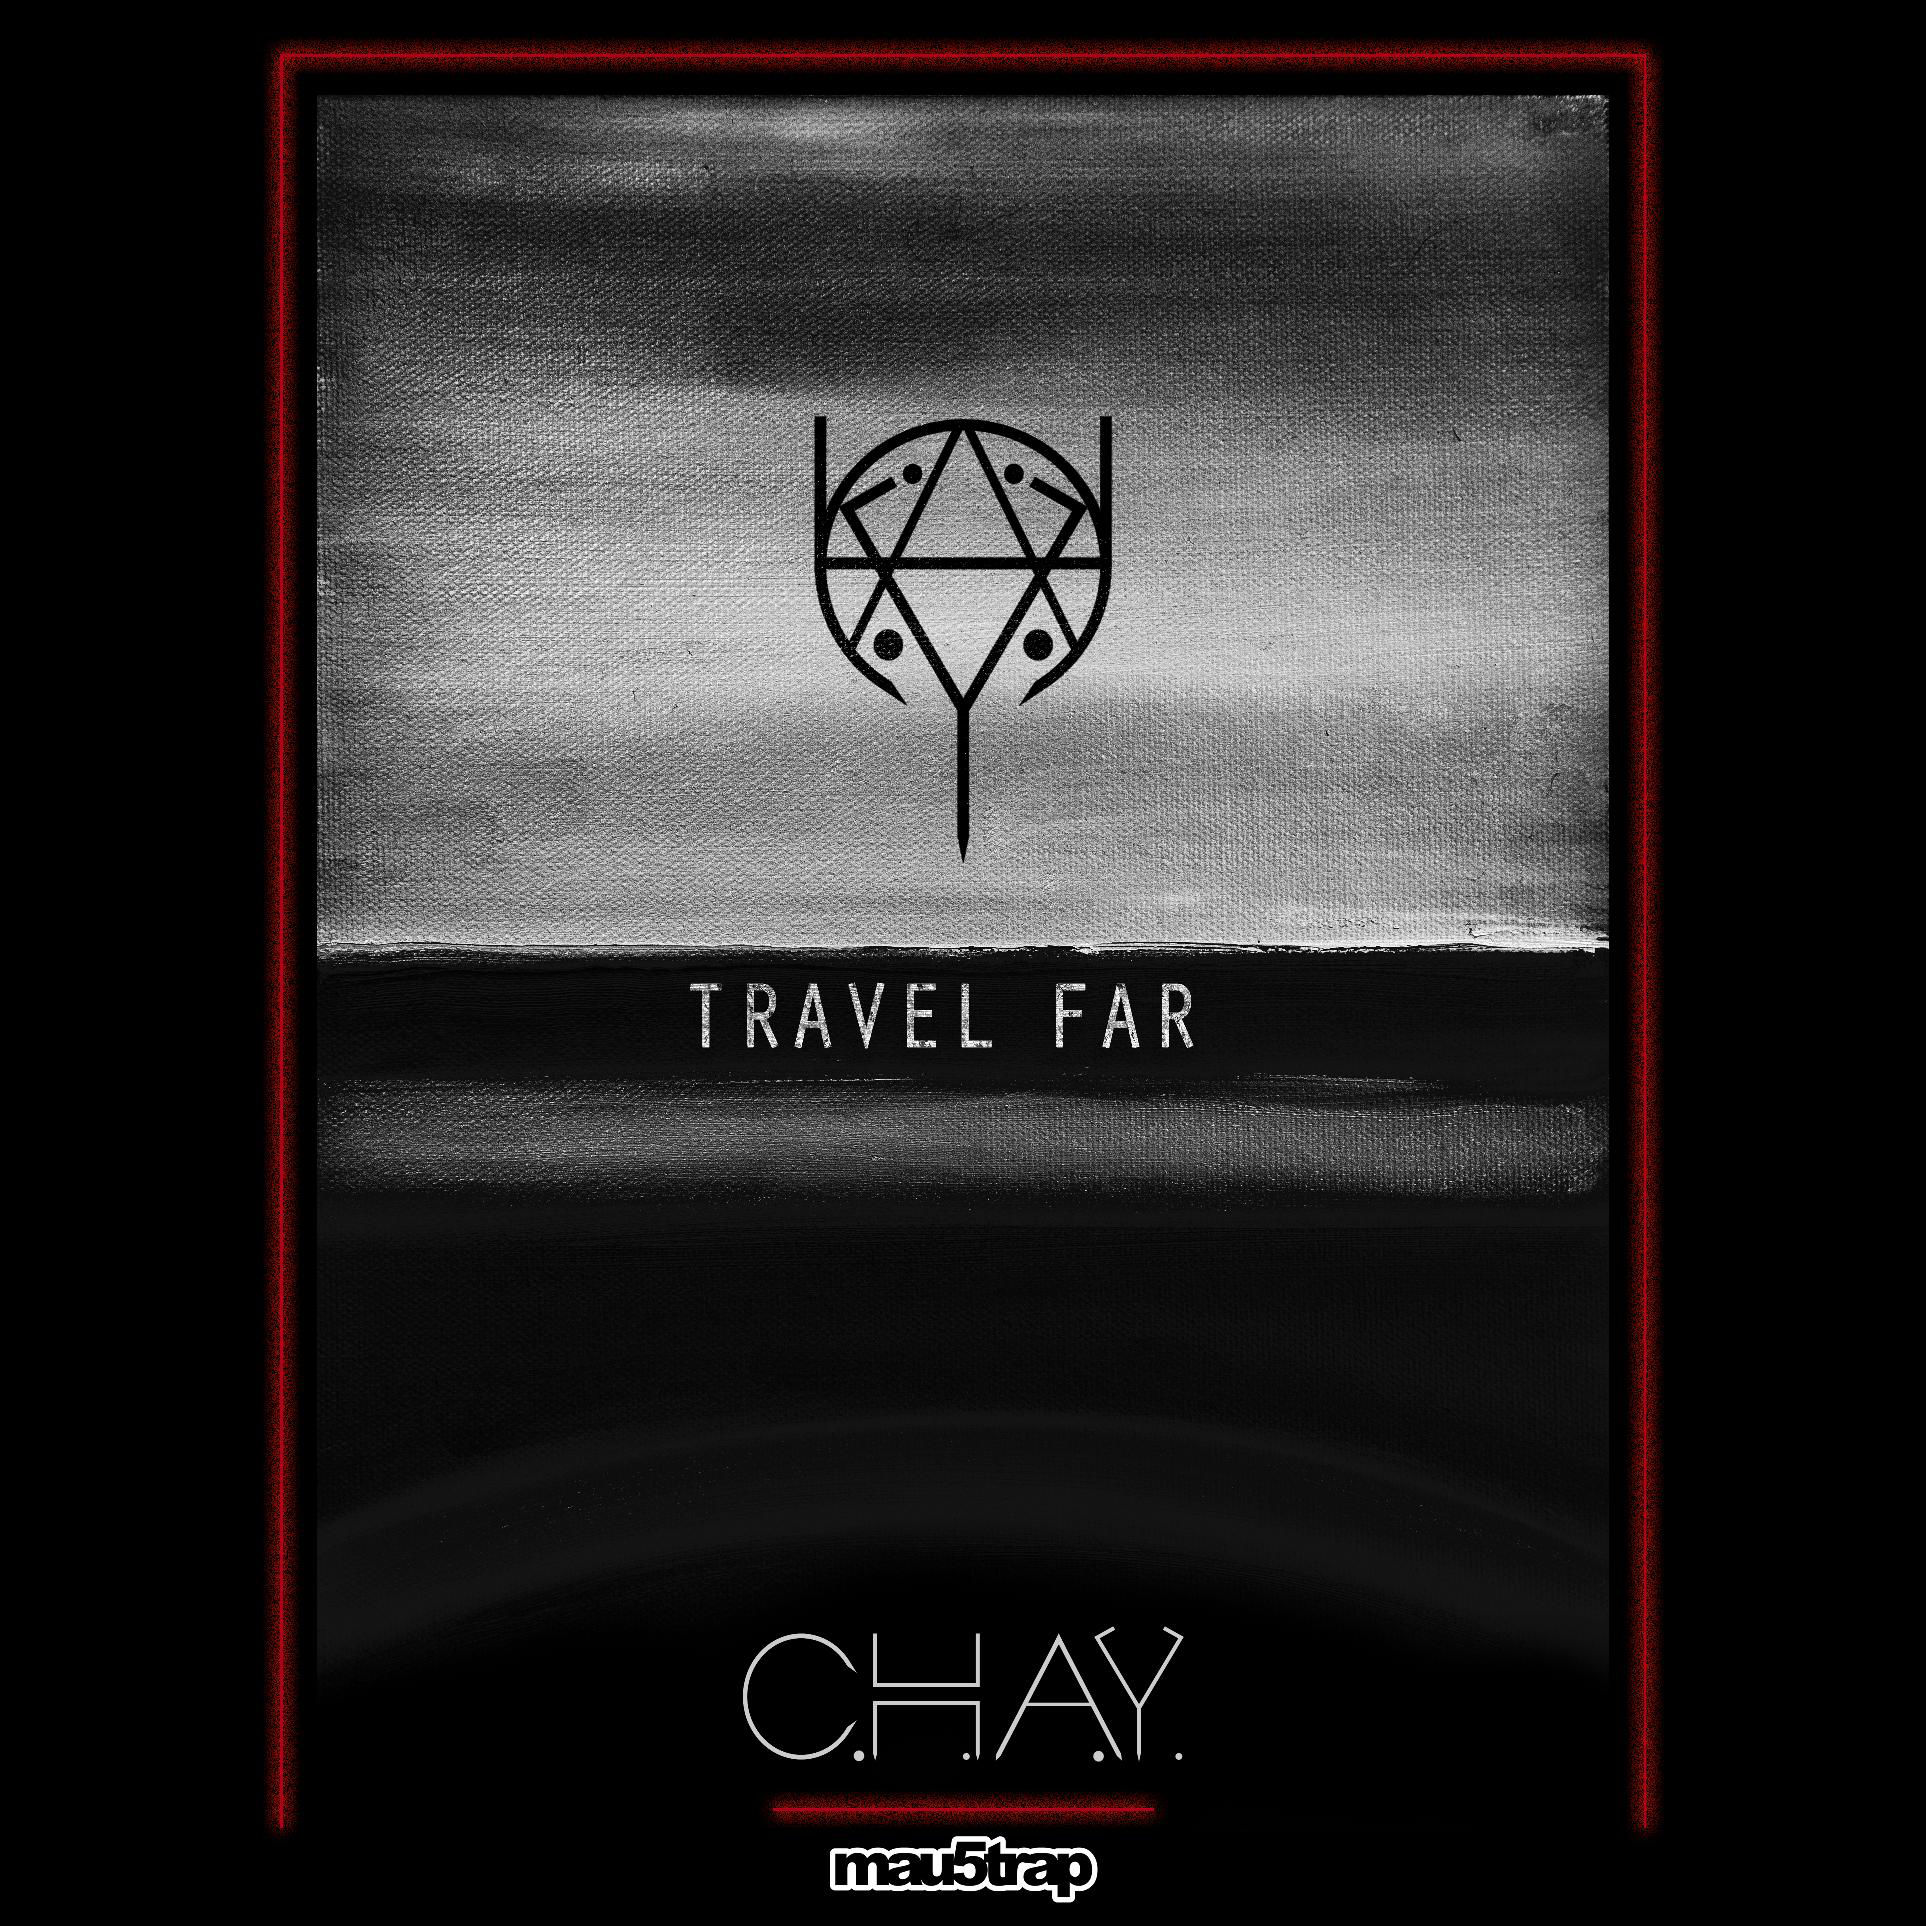 C.H.A.Y. - Travel Far EP